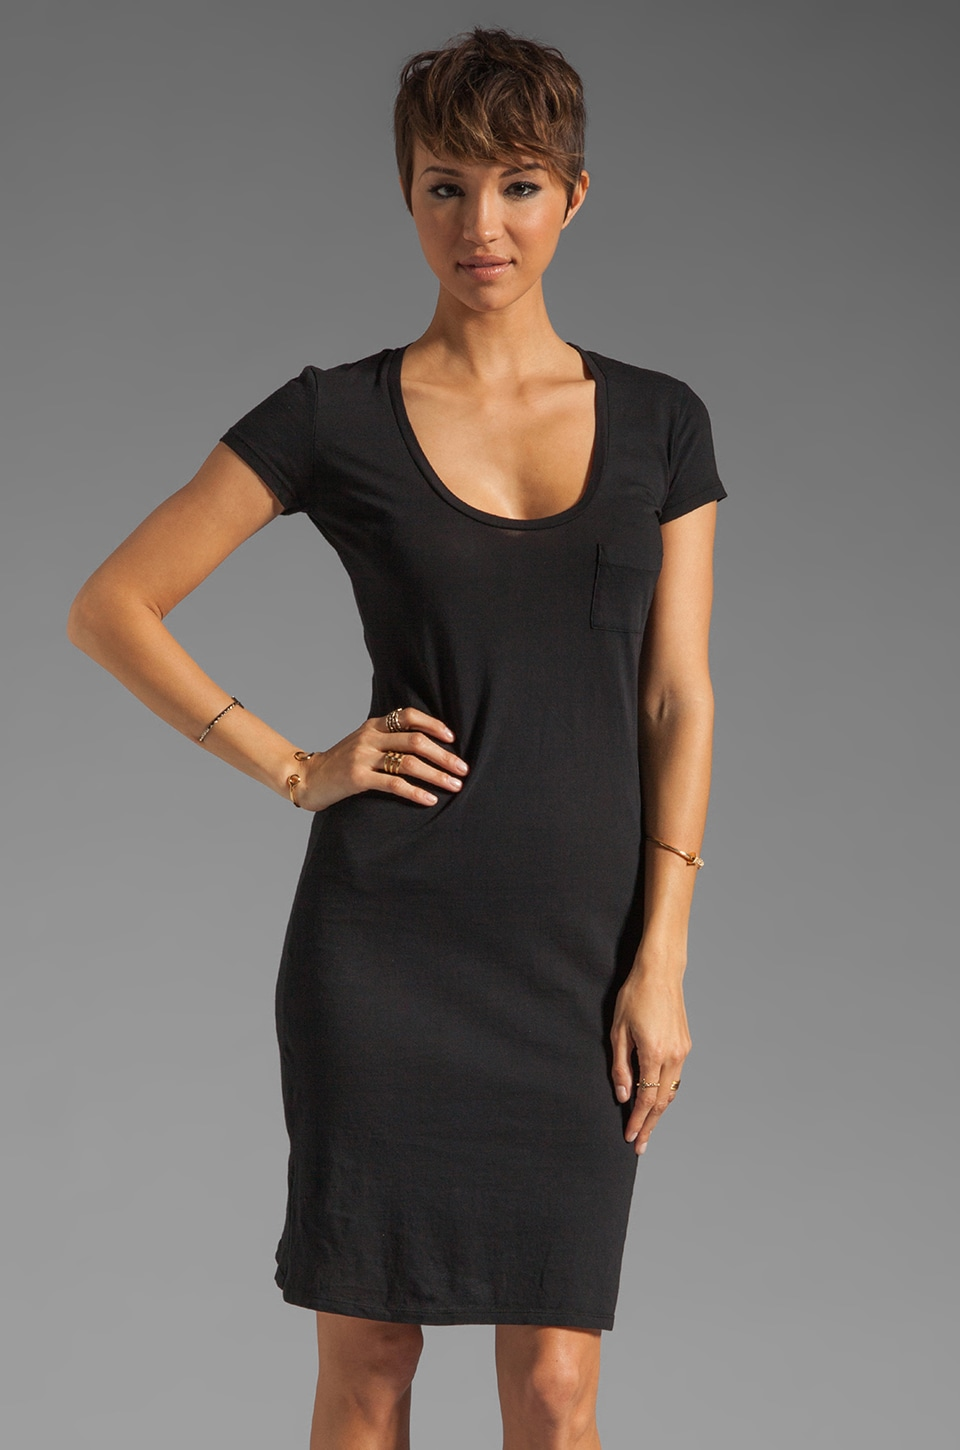 Bobi Light Weight Jersey Midi Dress in Black